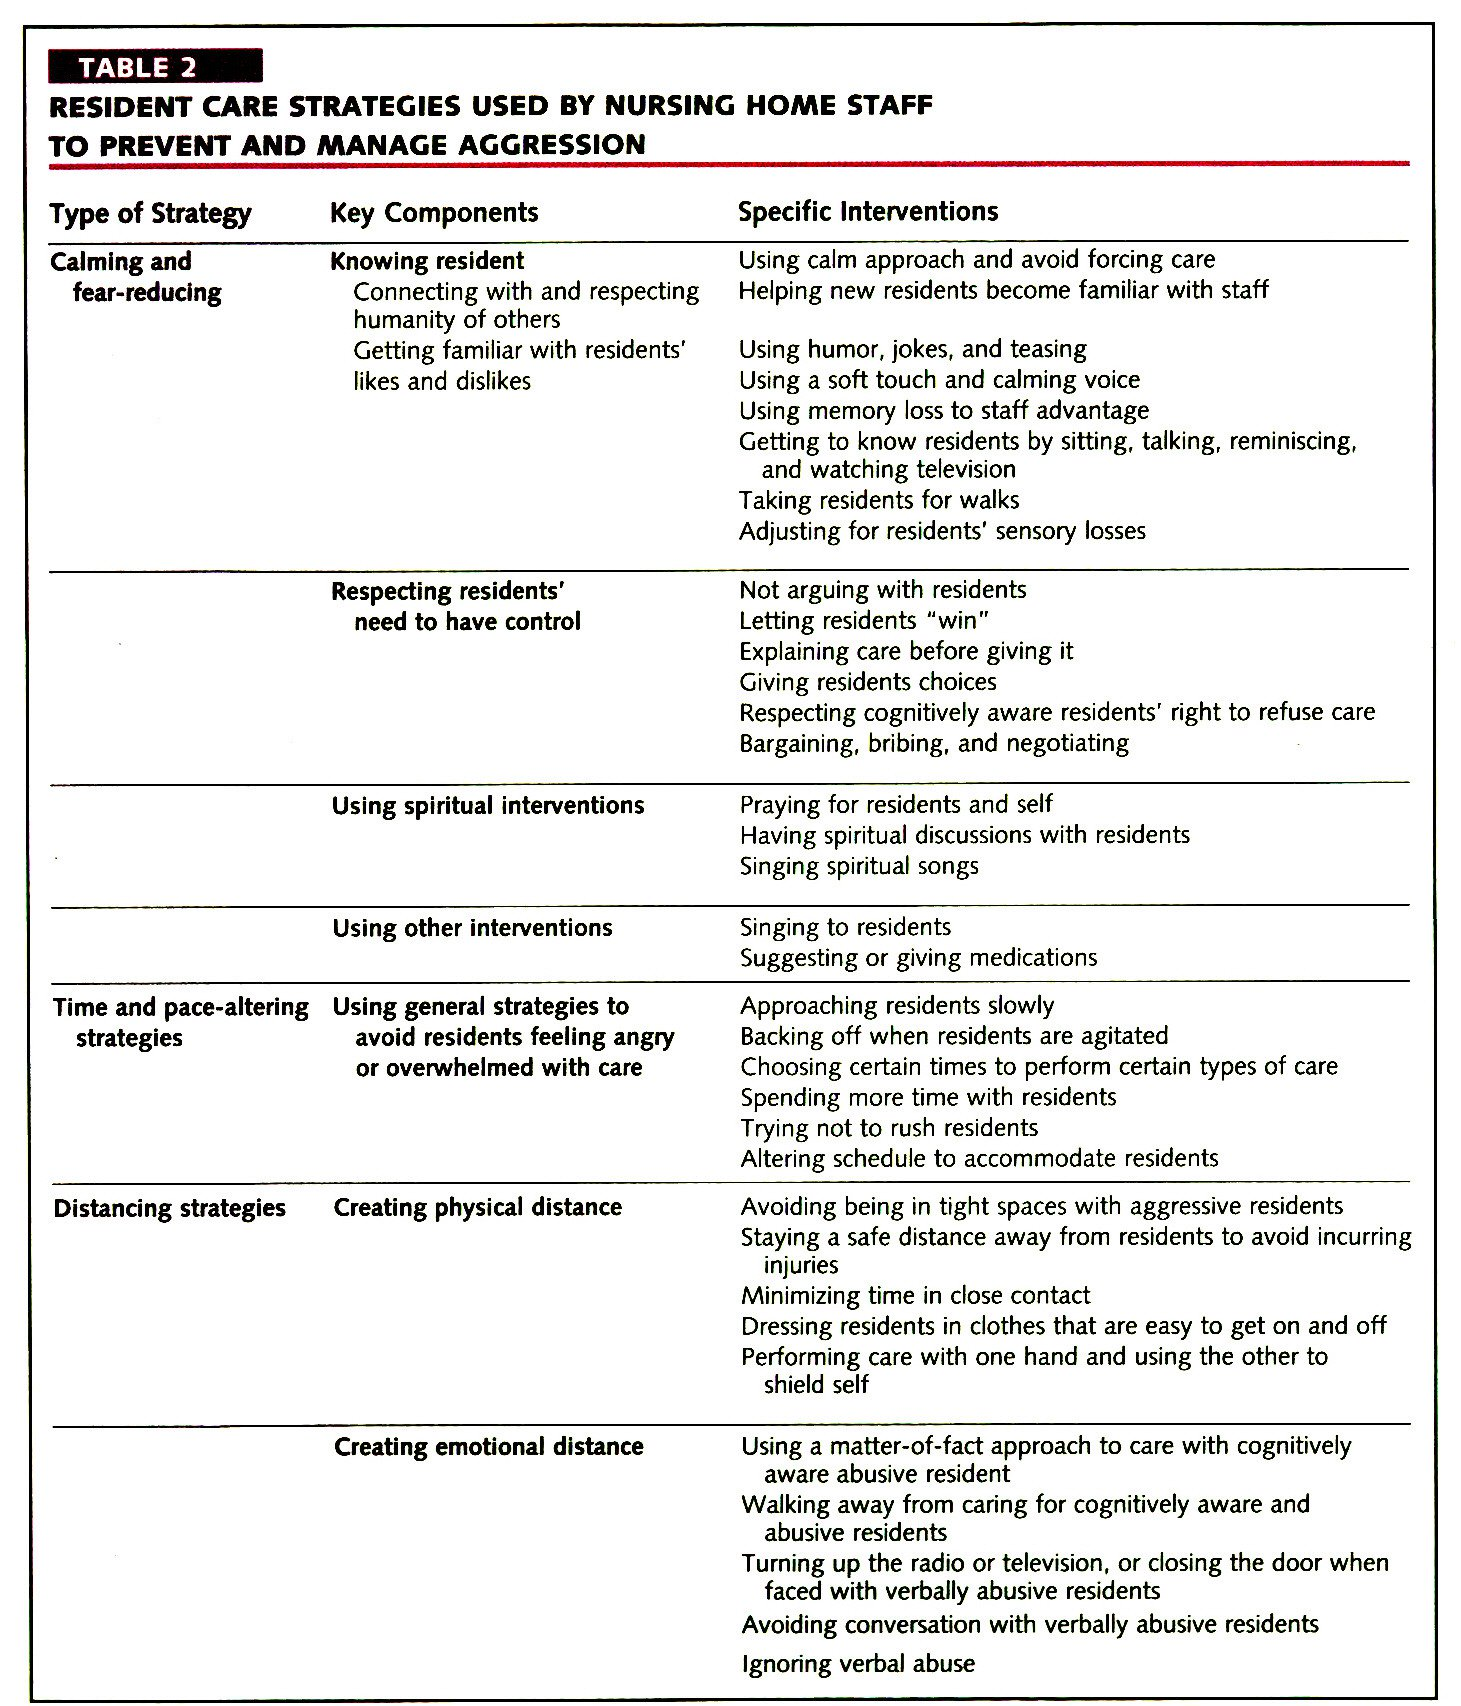 TABLE 2RESIDENT CARE STRATEGIES USED BY NURSING HOME STAFF TO PREVENT AND MANAGE AGGRESSION